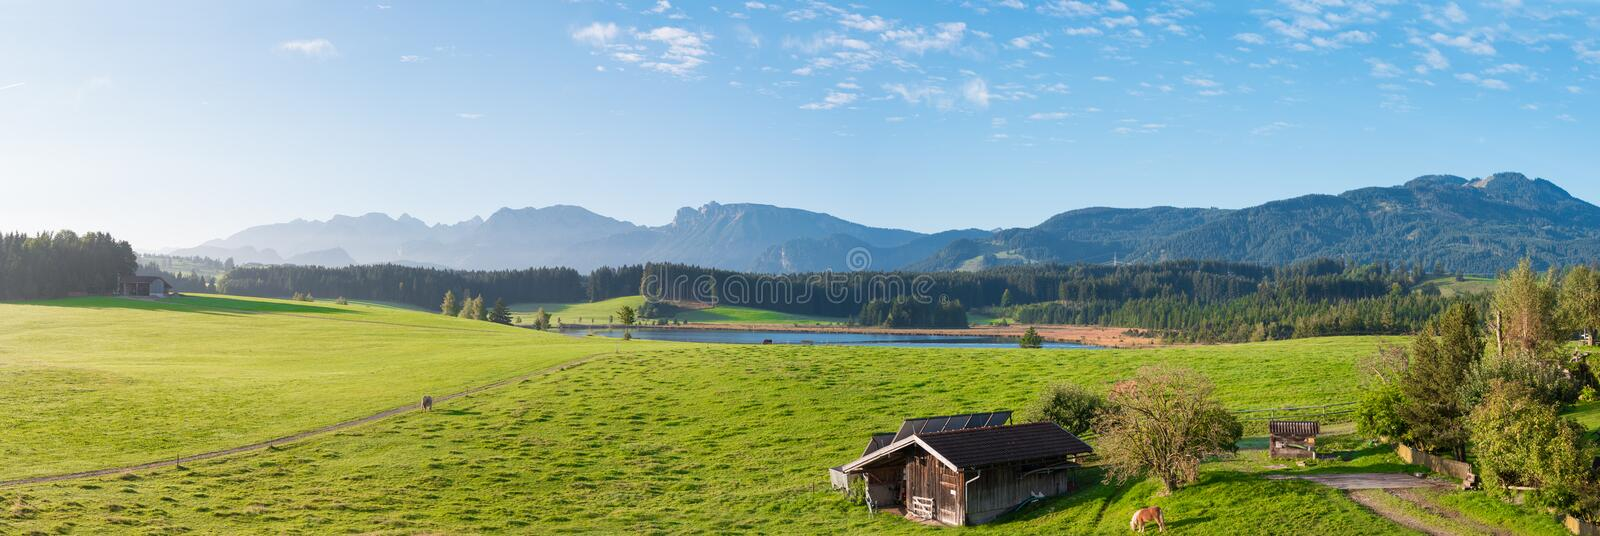 German Alps Allgäu Panorama royalty free stock image